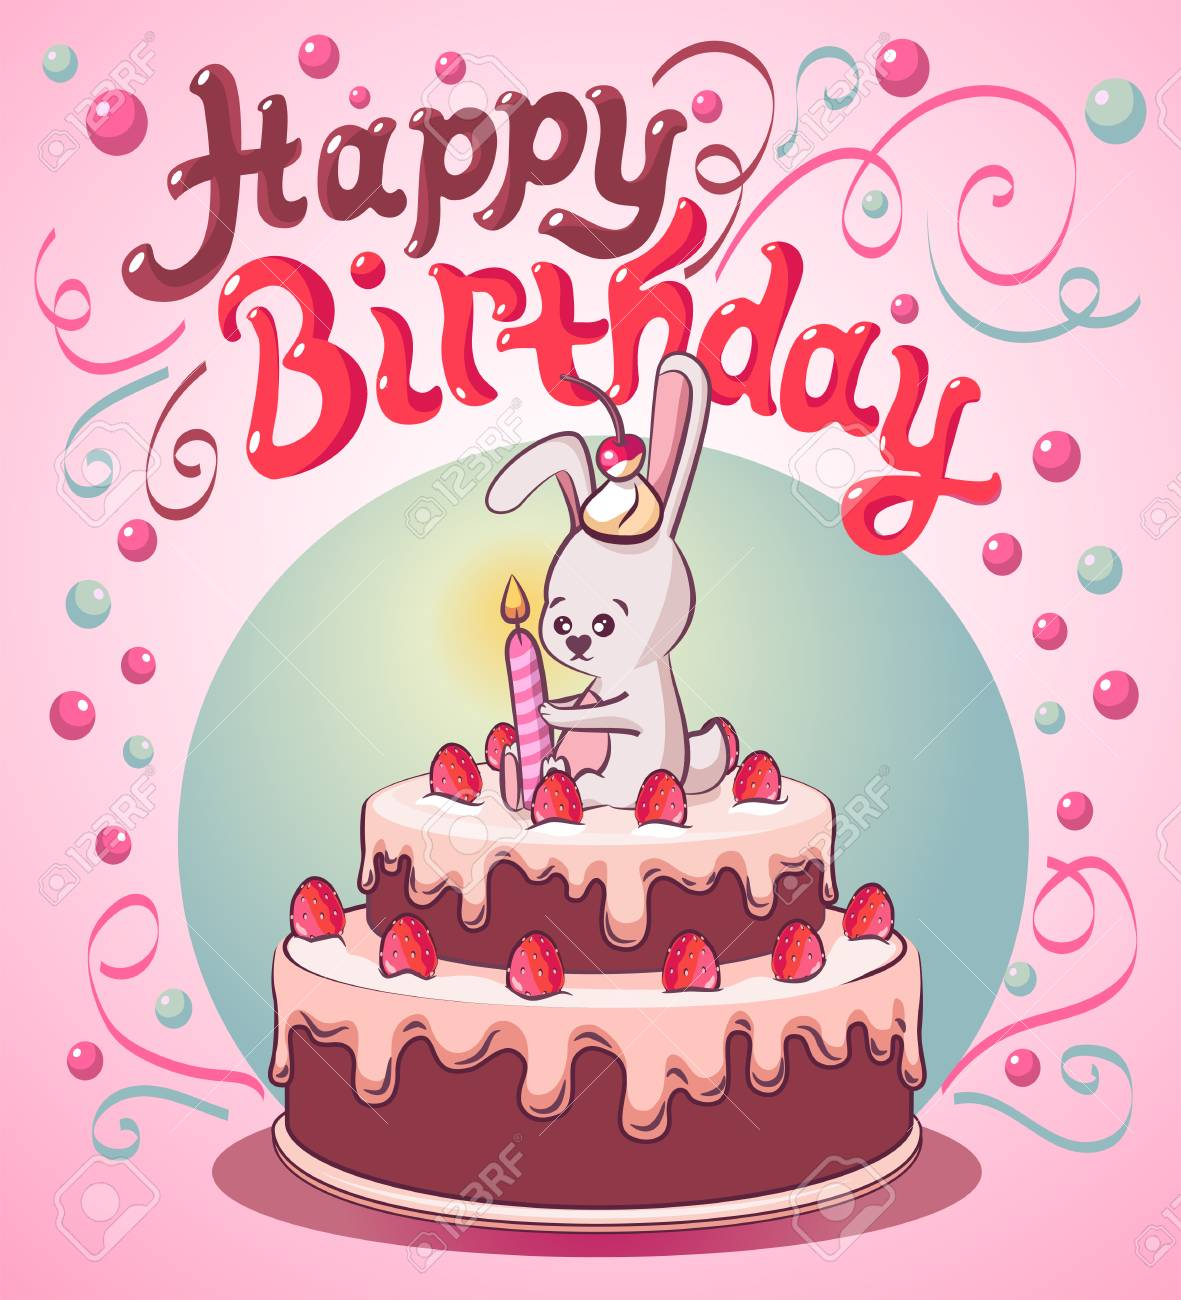 Peachy Happy Birthday Cake With Strawberry Royalty Free Cliparts Vectors Personalised Birthday Cards Paralily Jamesorg